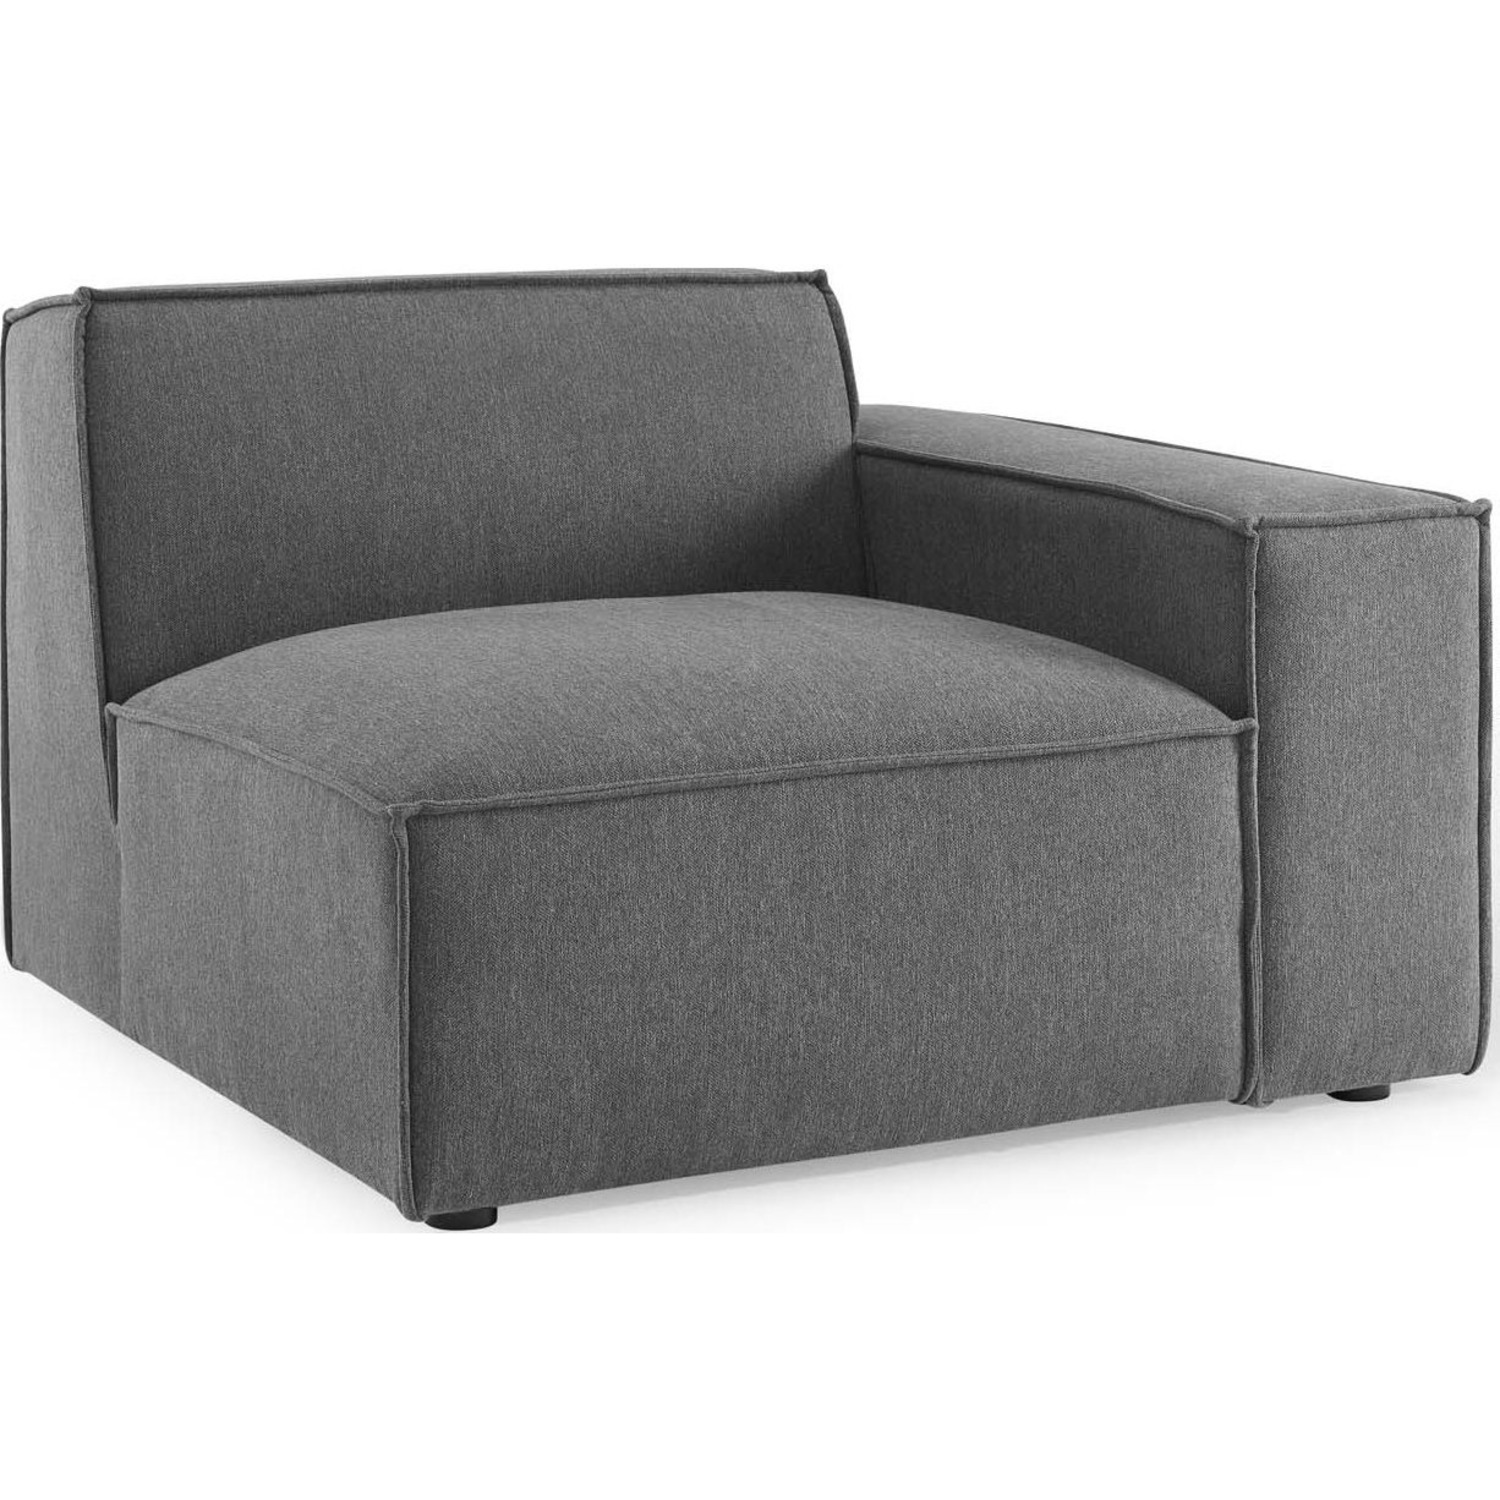 4-Piece Sectional Sofa In Charcoal Foam Padding - image-2